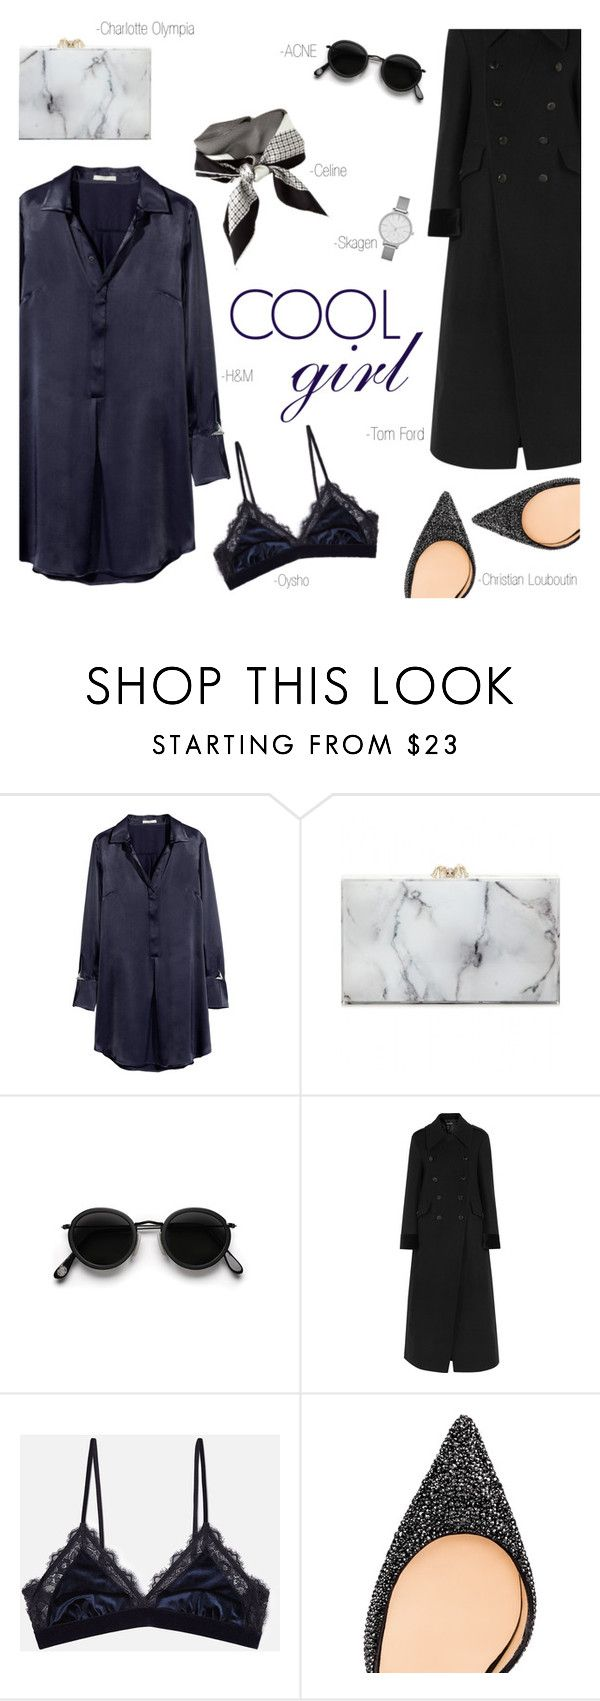 """""""Shirt Dress"""" by modernbovary ❤ liked on Polyvore featuring H&M, Charlotte Olympia, CÉLINE, Acne Studios, Tom Ford, Oysho, Christian Louboutin and Skagen"""